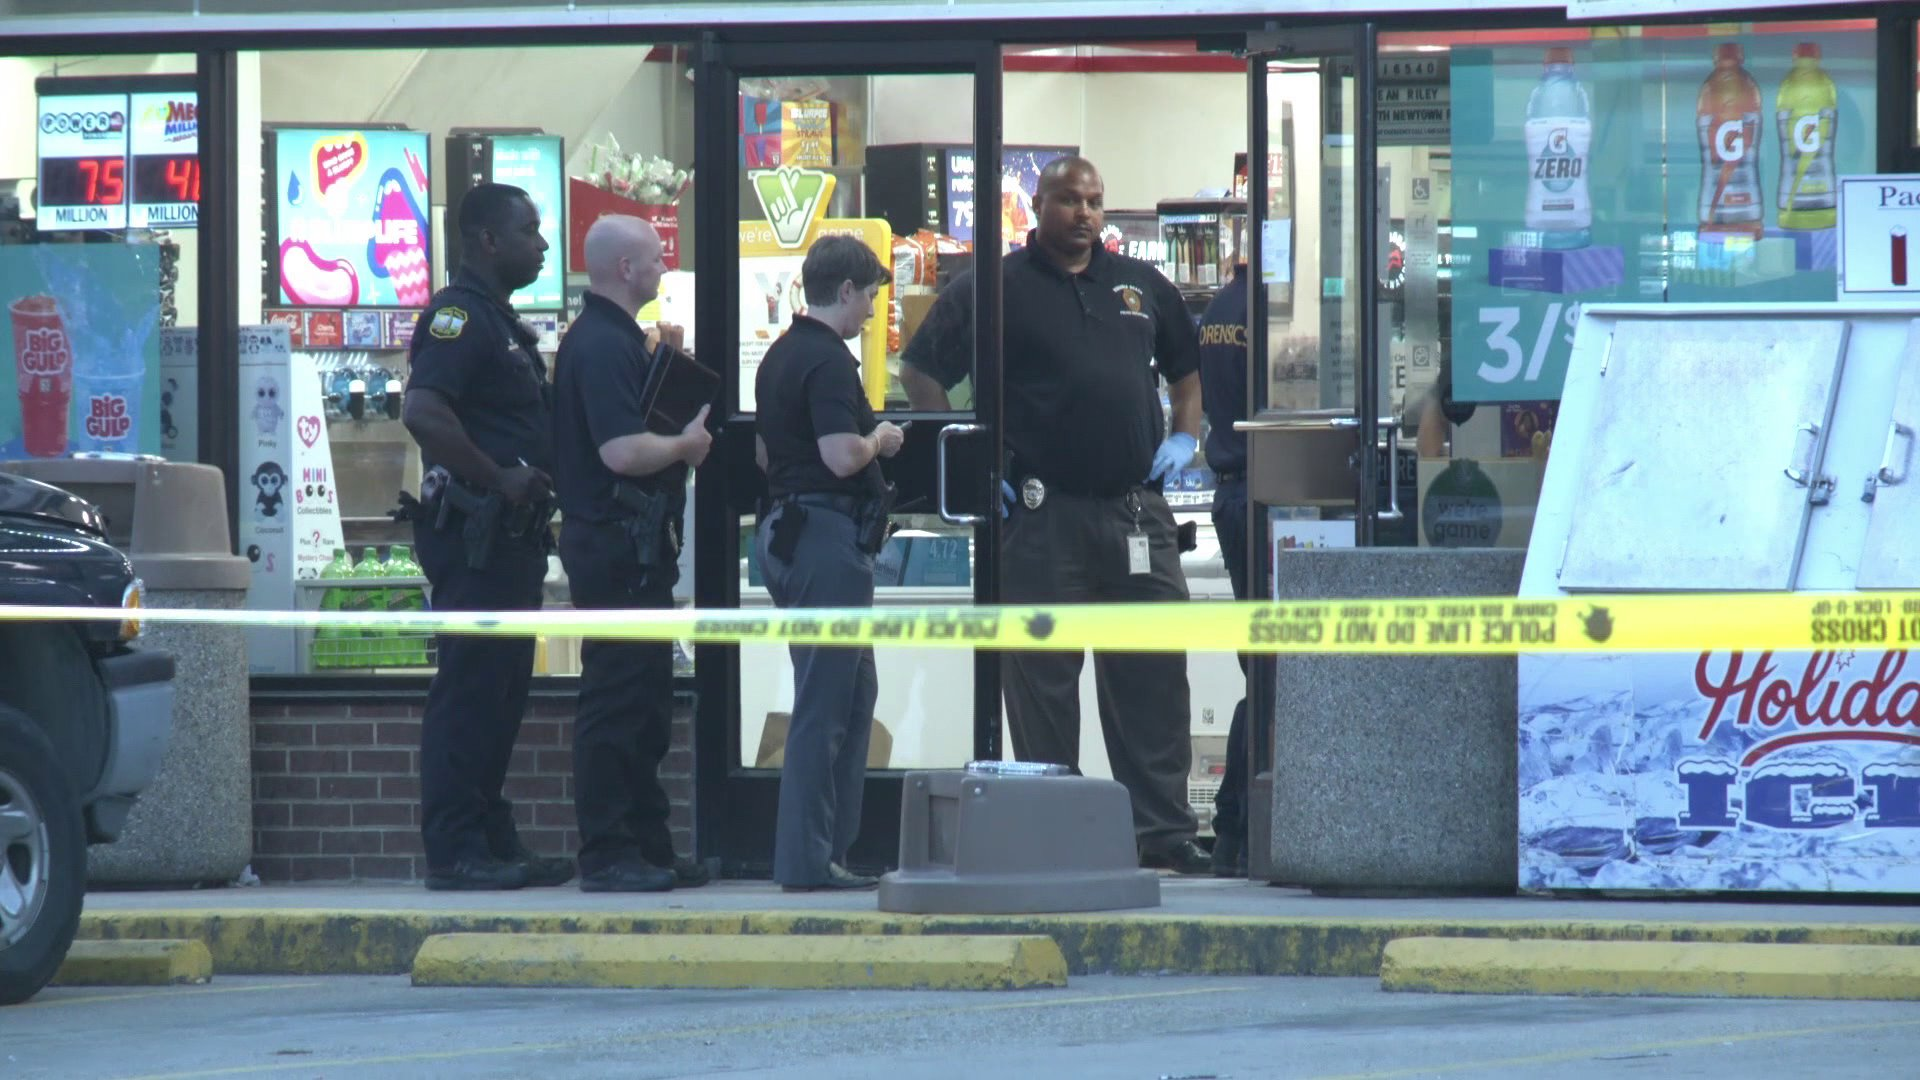 Two attempted robbers were shot, one fatally, at a 7-Eleven in Virginia Beach, Virginia on July 25, 2019. (Credit: WTKR)